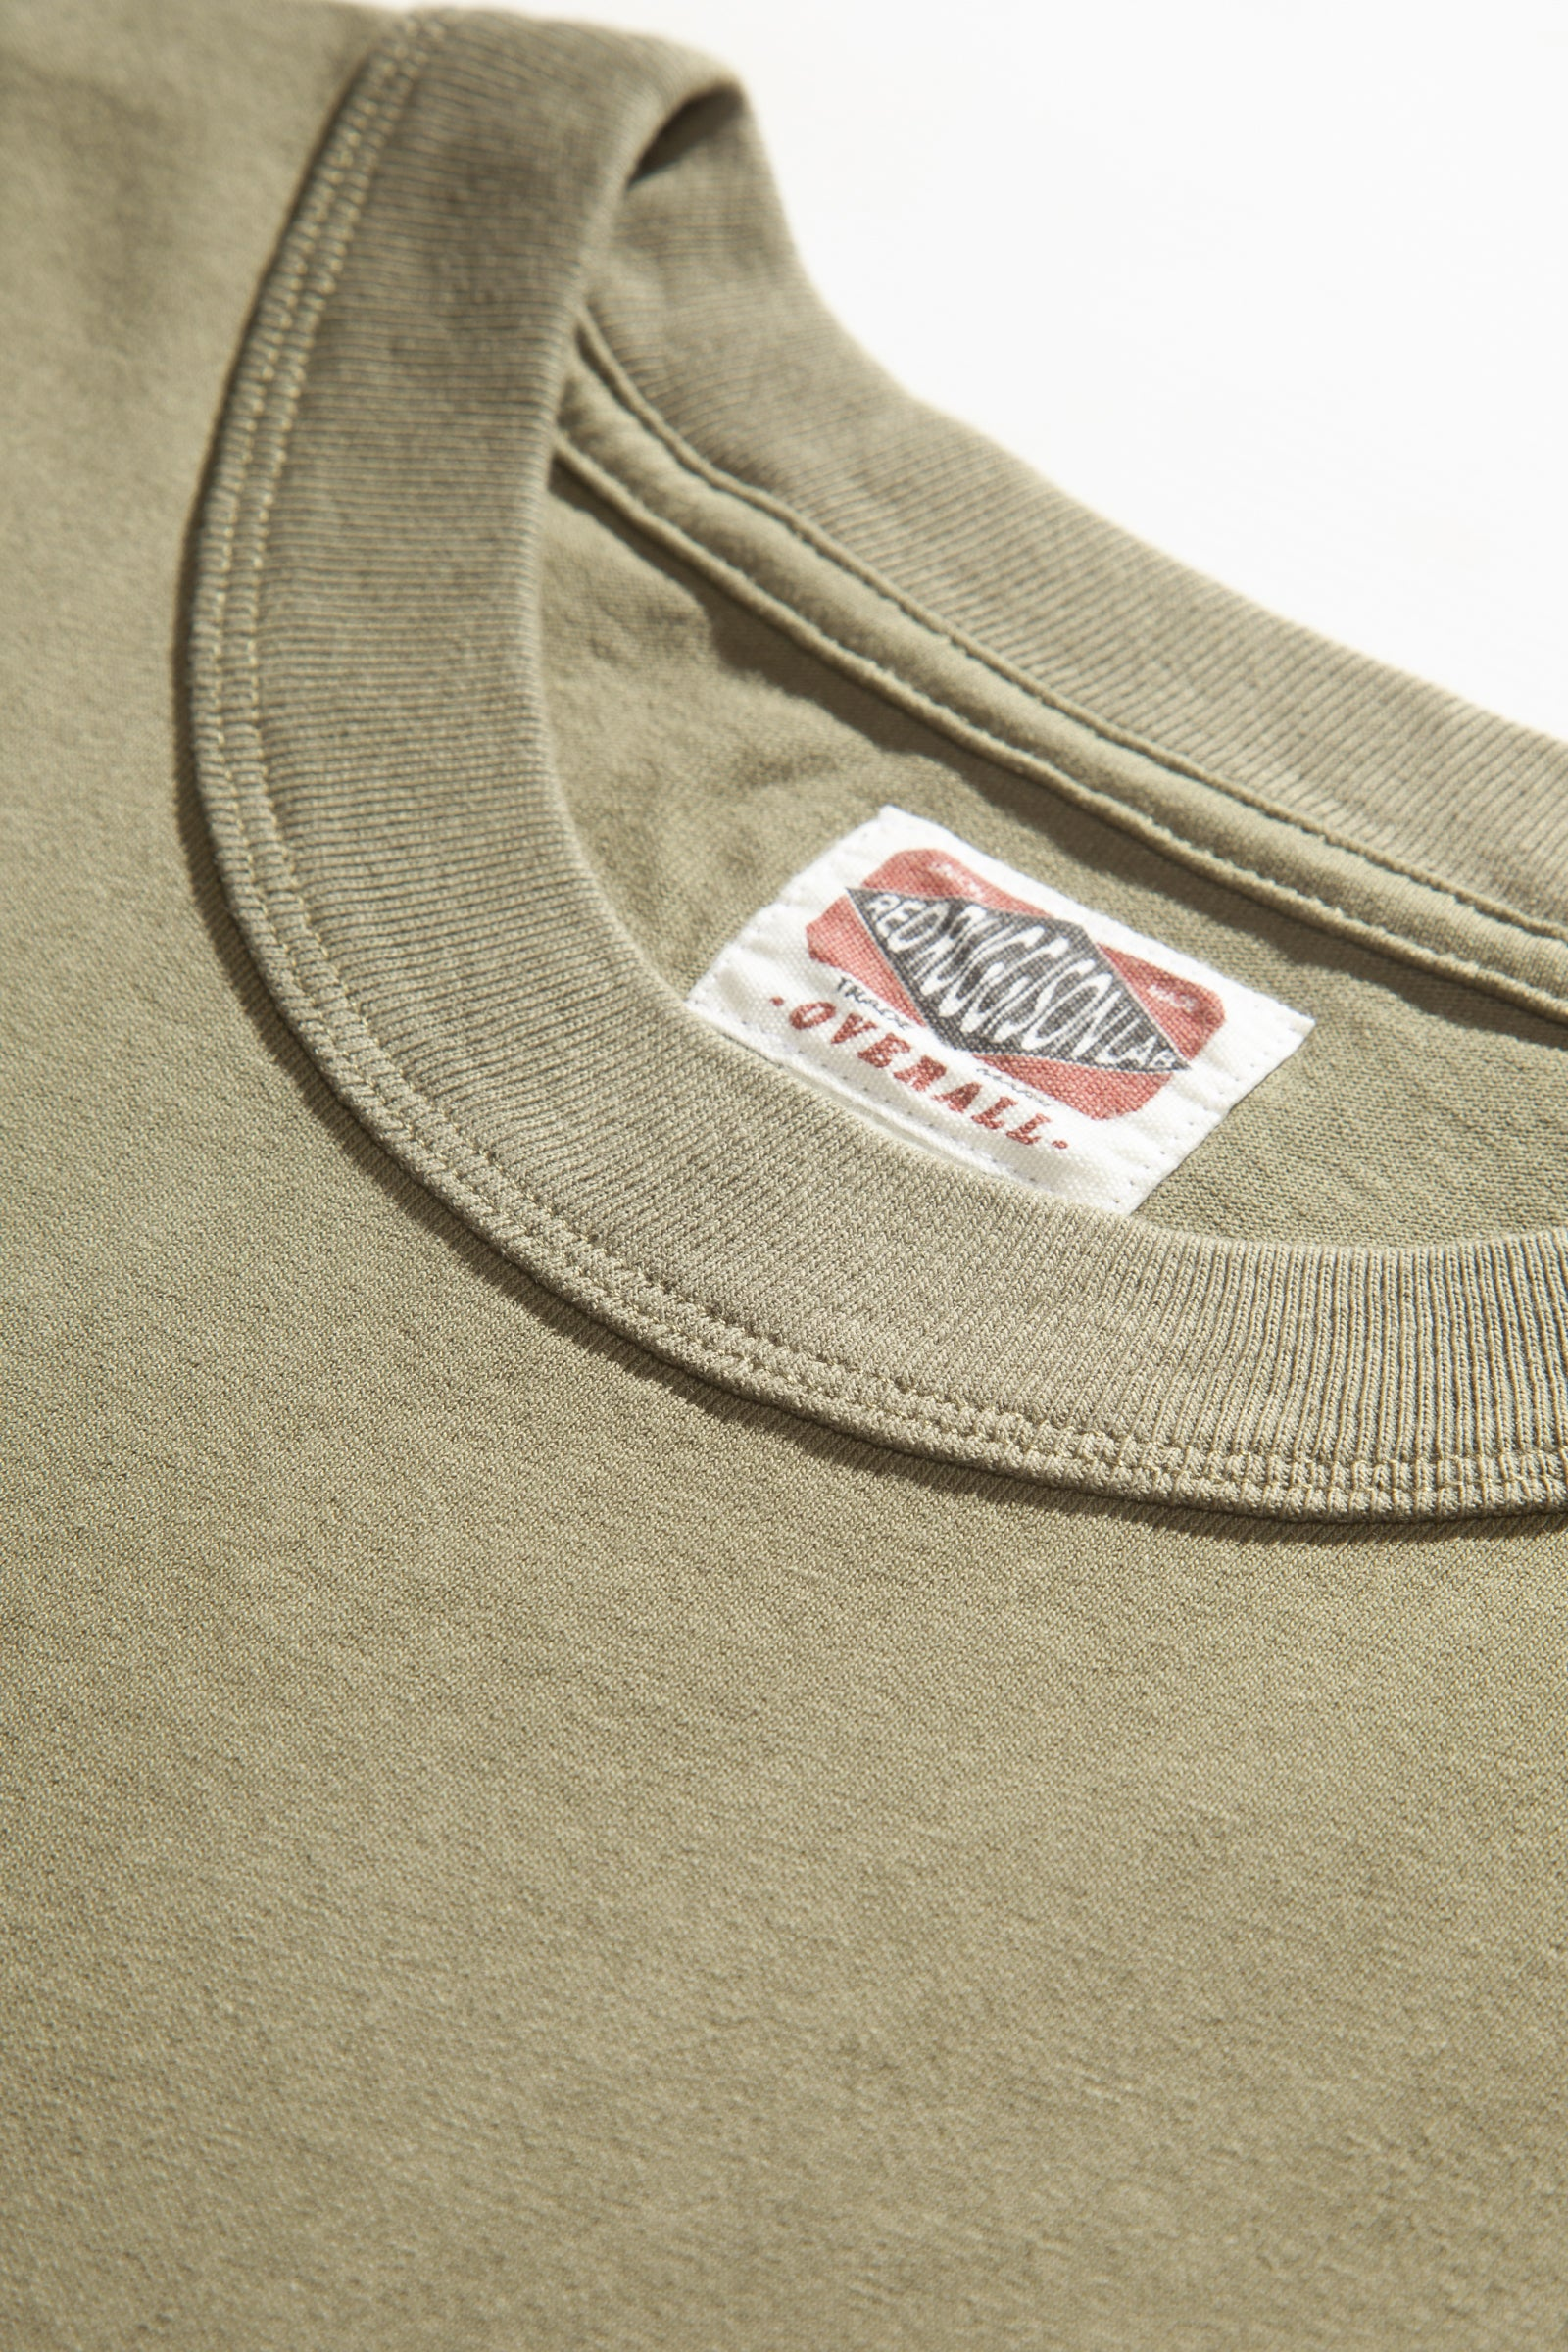 Red Ruggison - Short Sleeve T-Shirt - Olive